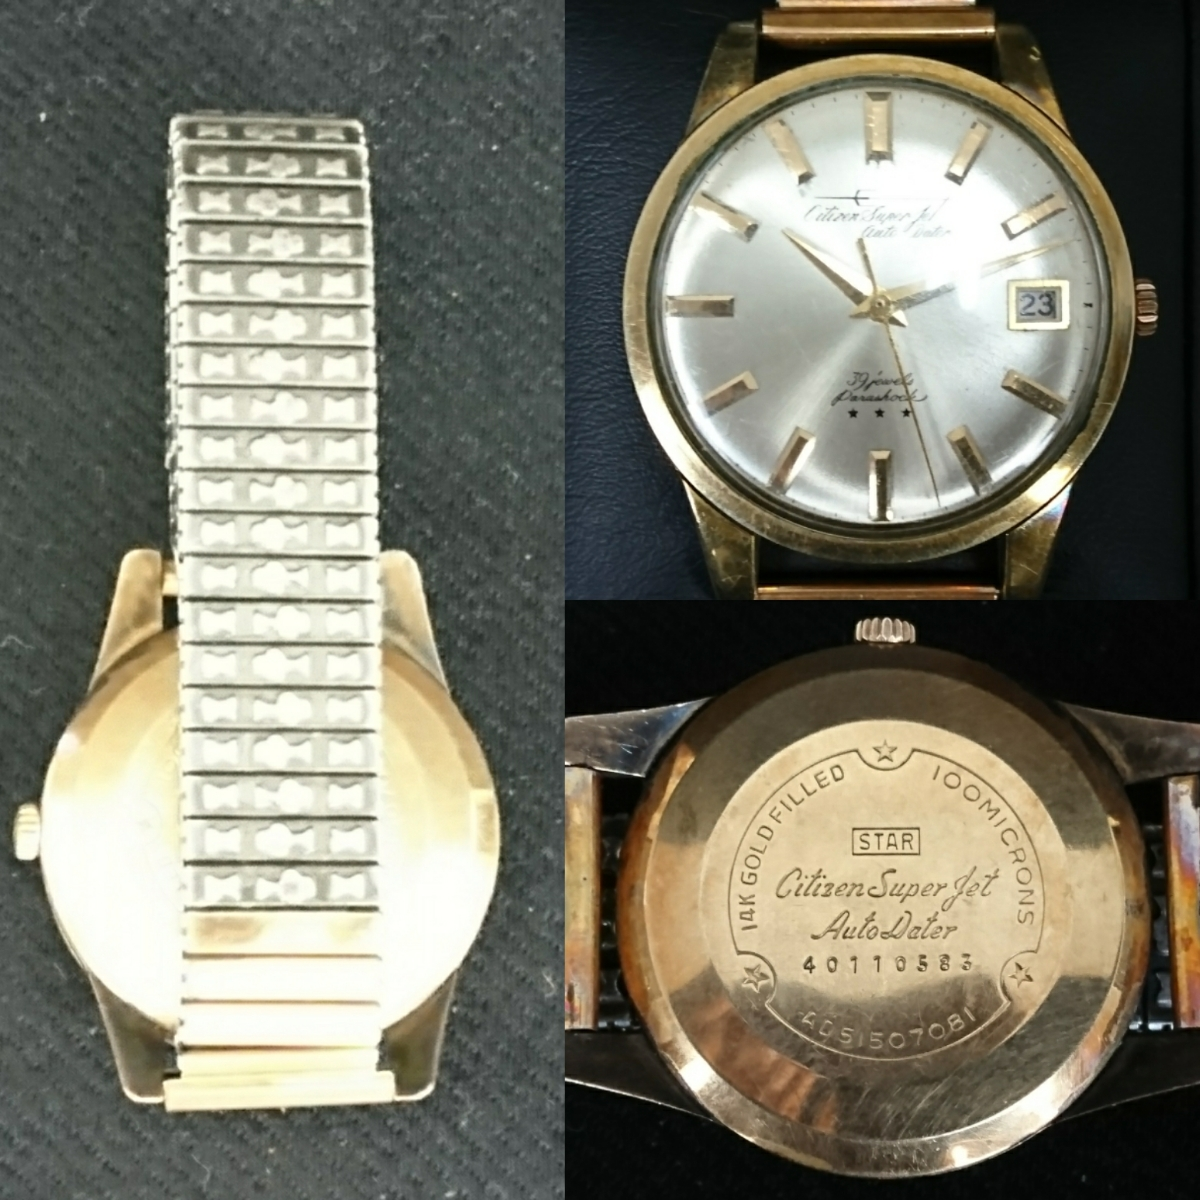 CITIZEN シチズン Super Jet Auto Dater 39jewels スーパージェット 14kGOLDFILLED  稼動品 防風傷あり_画像2